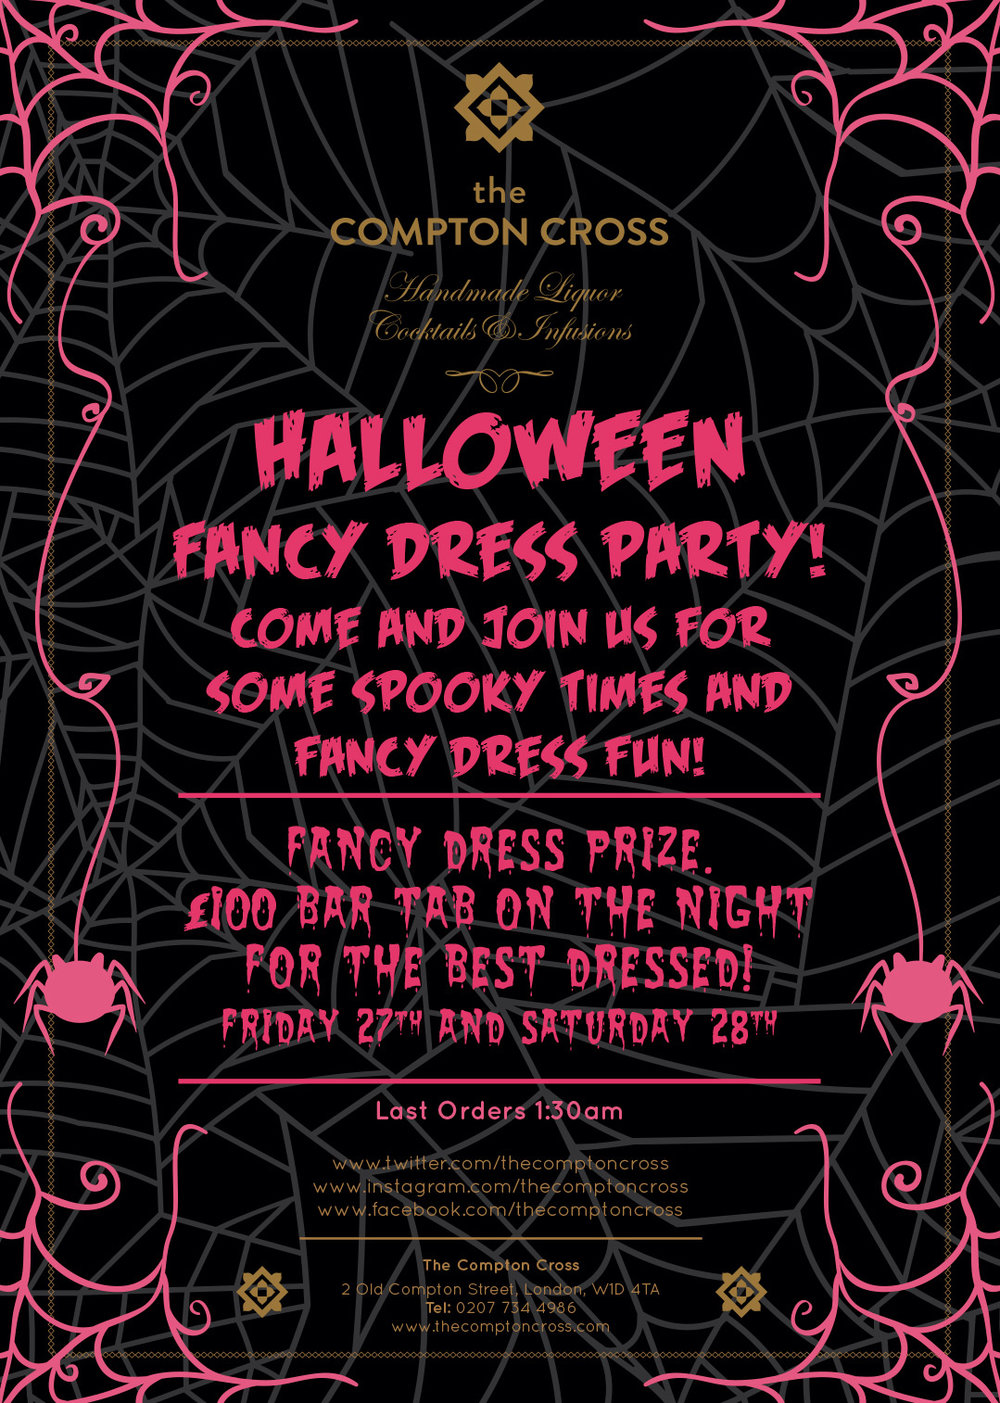 Compton-Cross_flyer_halloween_a5_print5.jpg